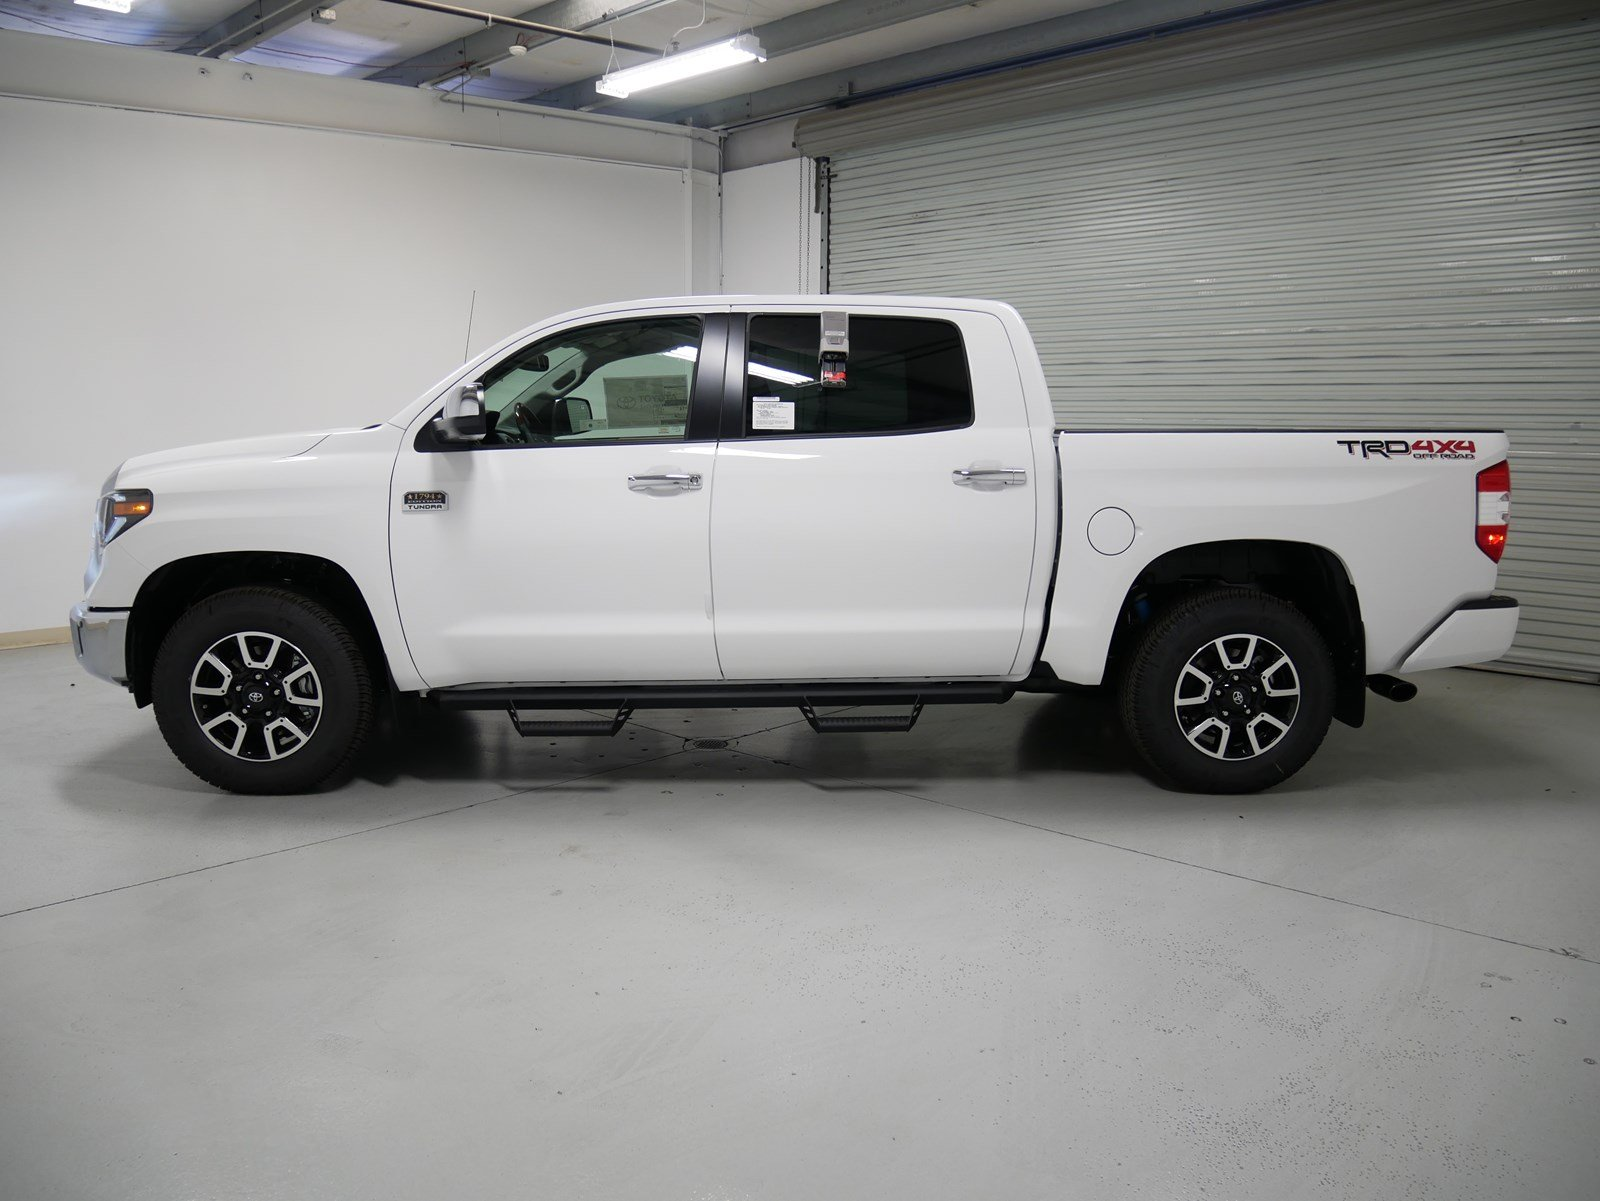 New 2019 Toyota Tundra 4WD 1794 Edition Crew Cab Pickup in Prescott